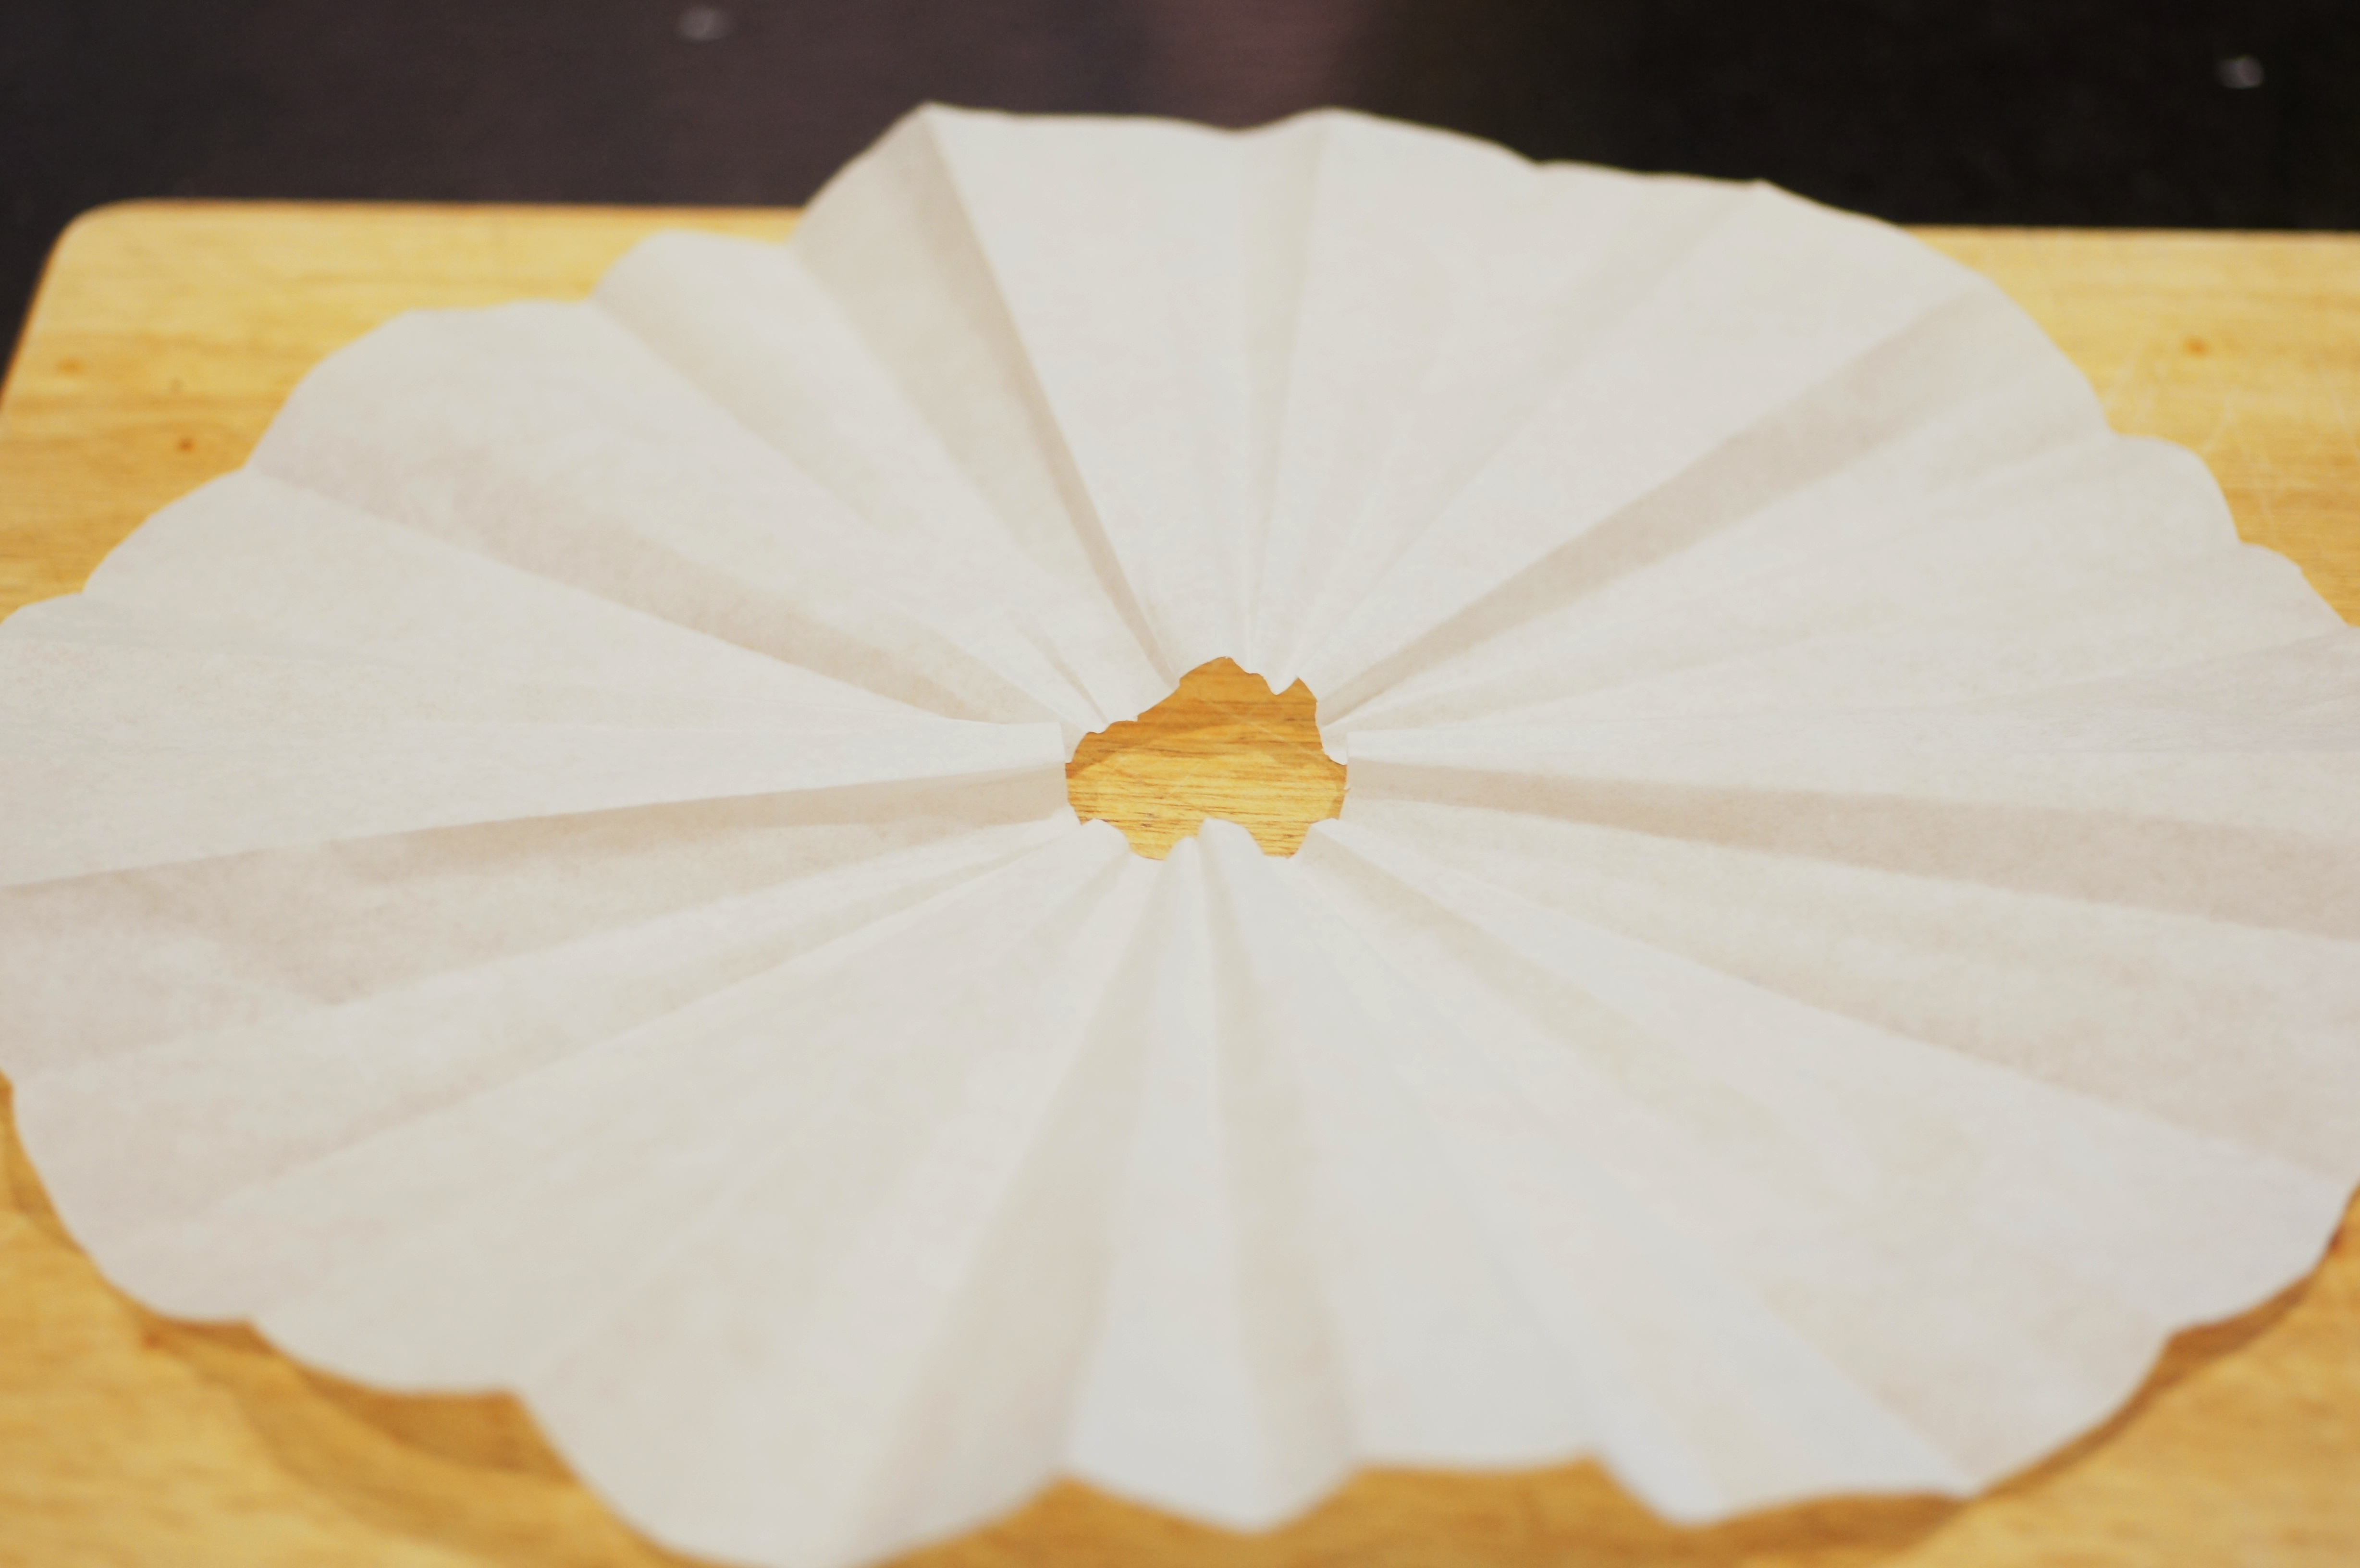 Can You Use Parchment Paper When Baking A Cake